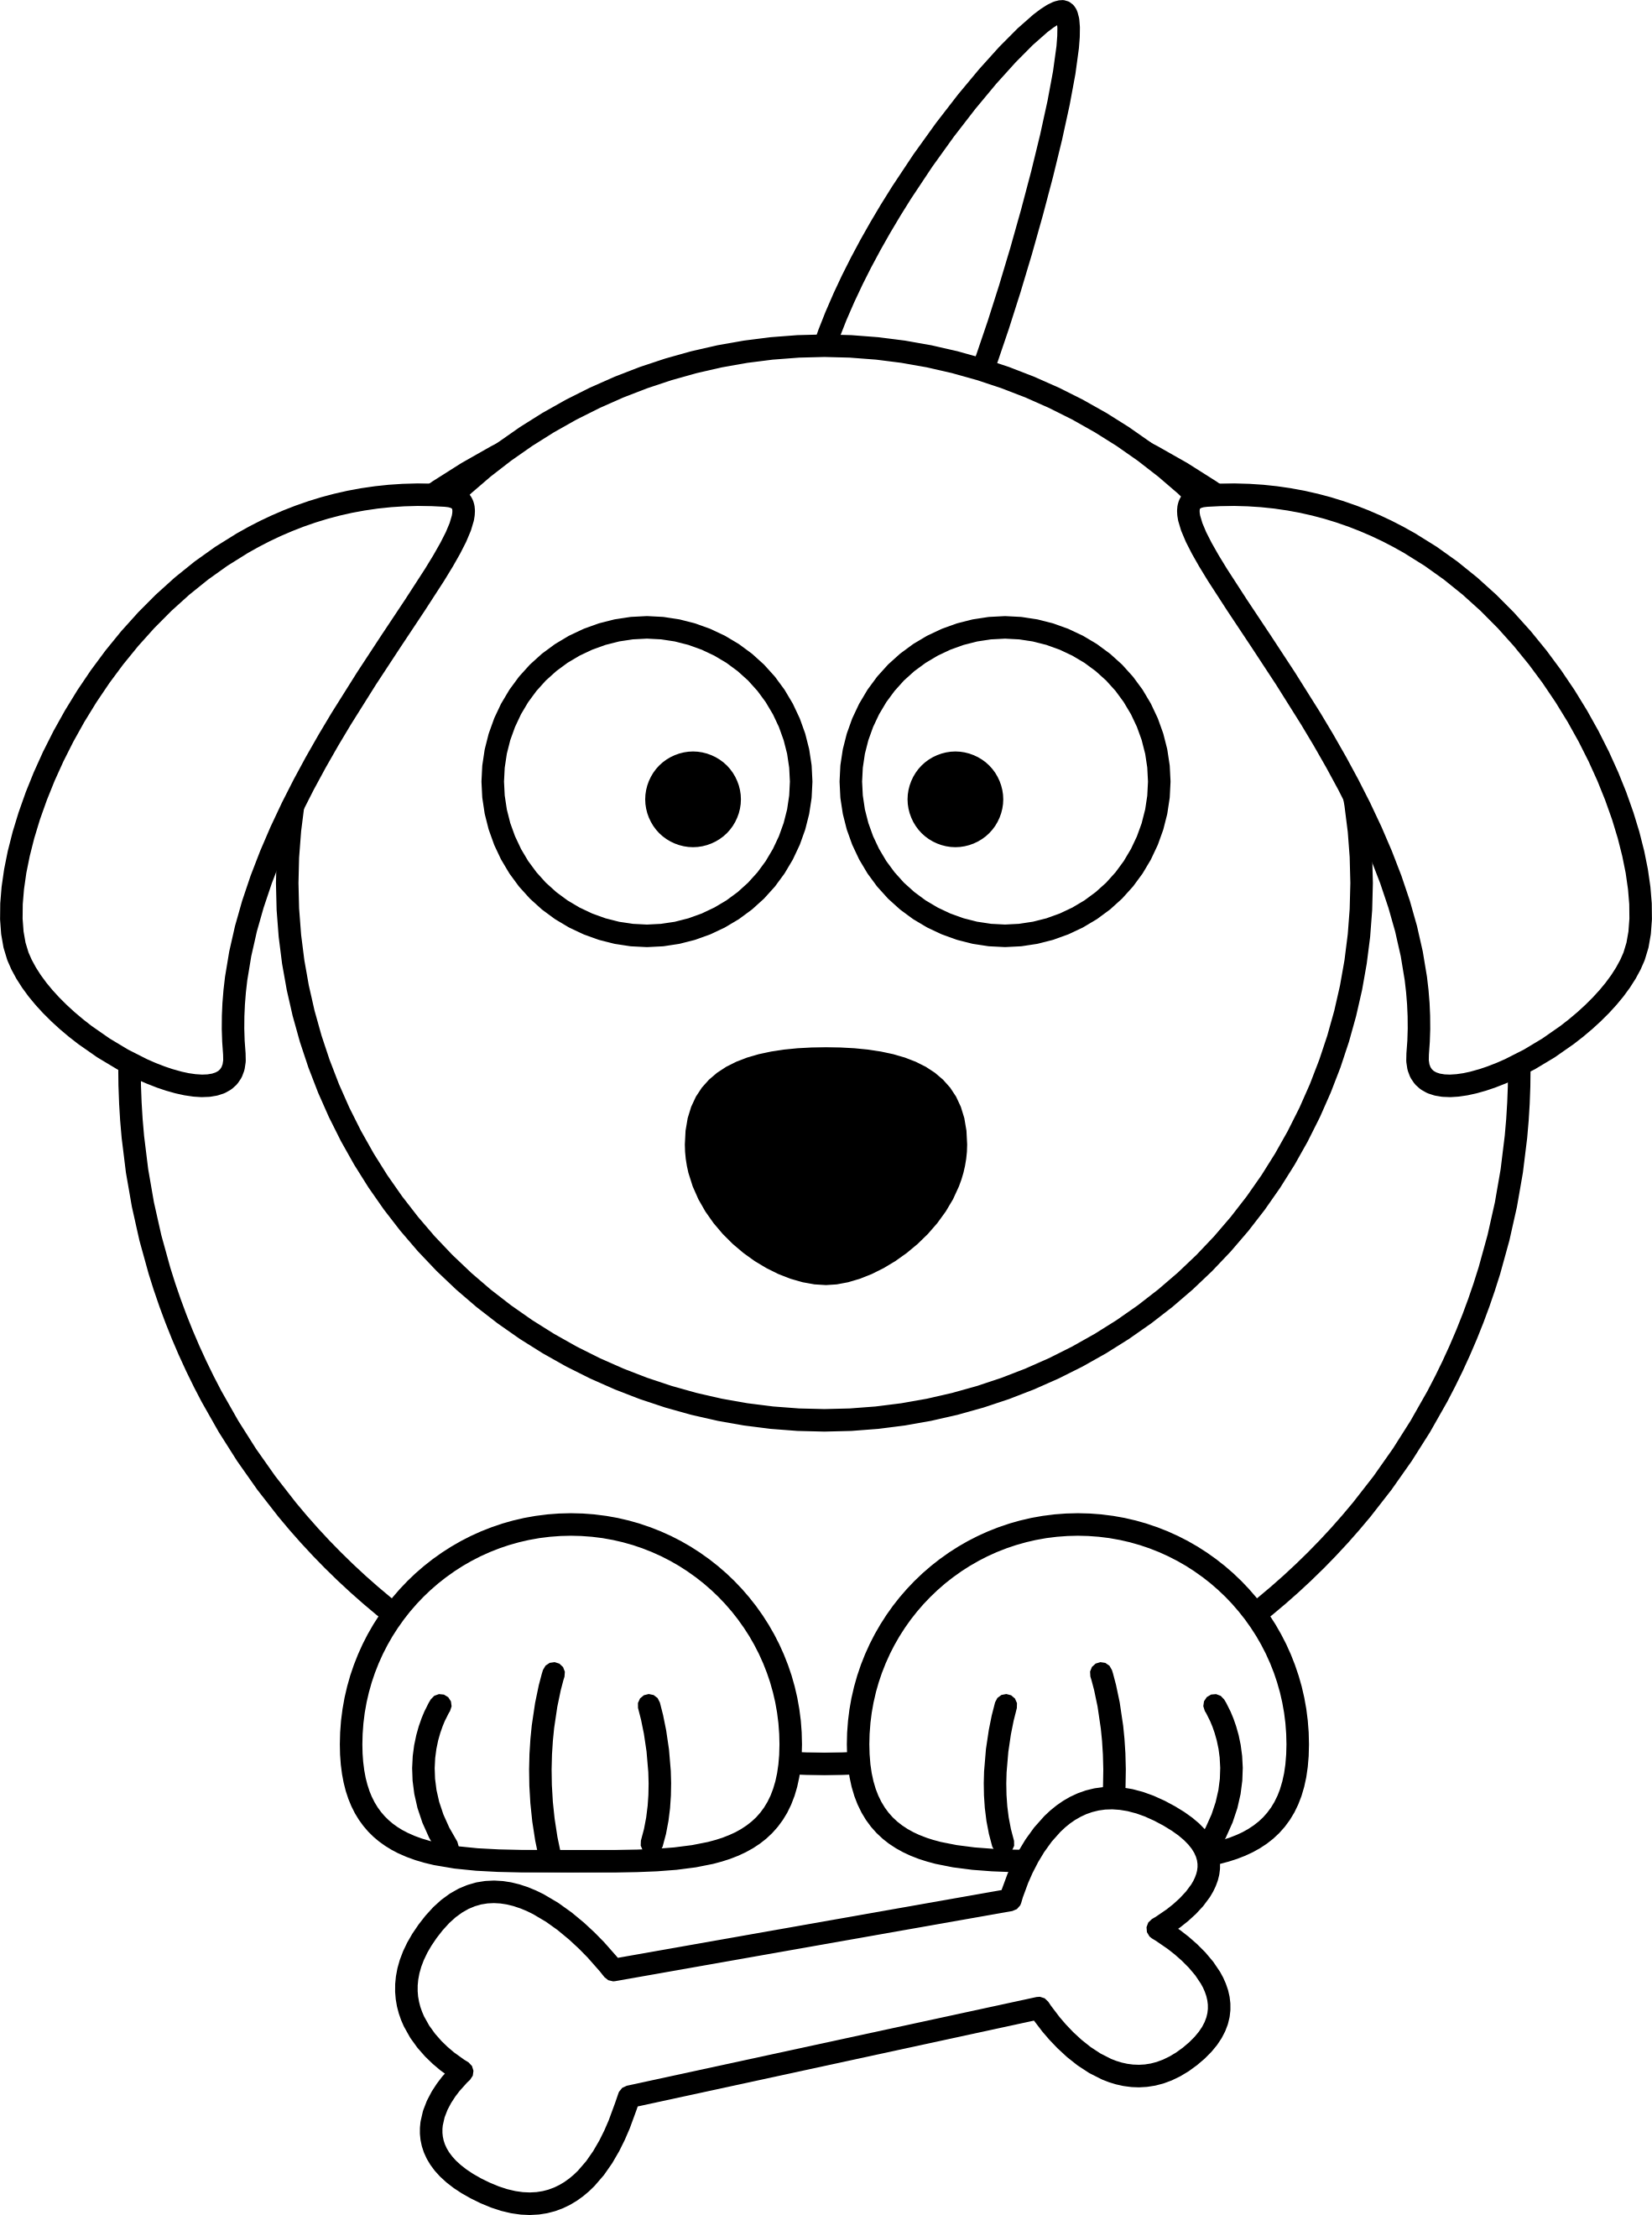 Dog clipart easy. Bear simple drawing at